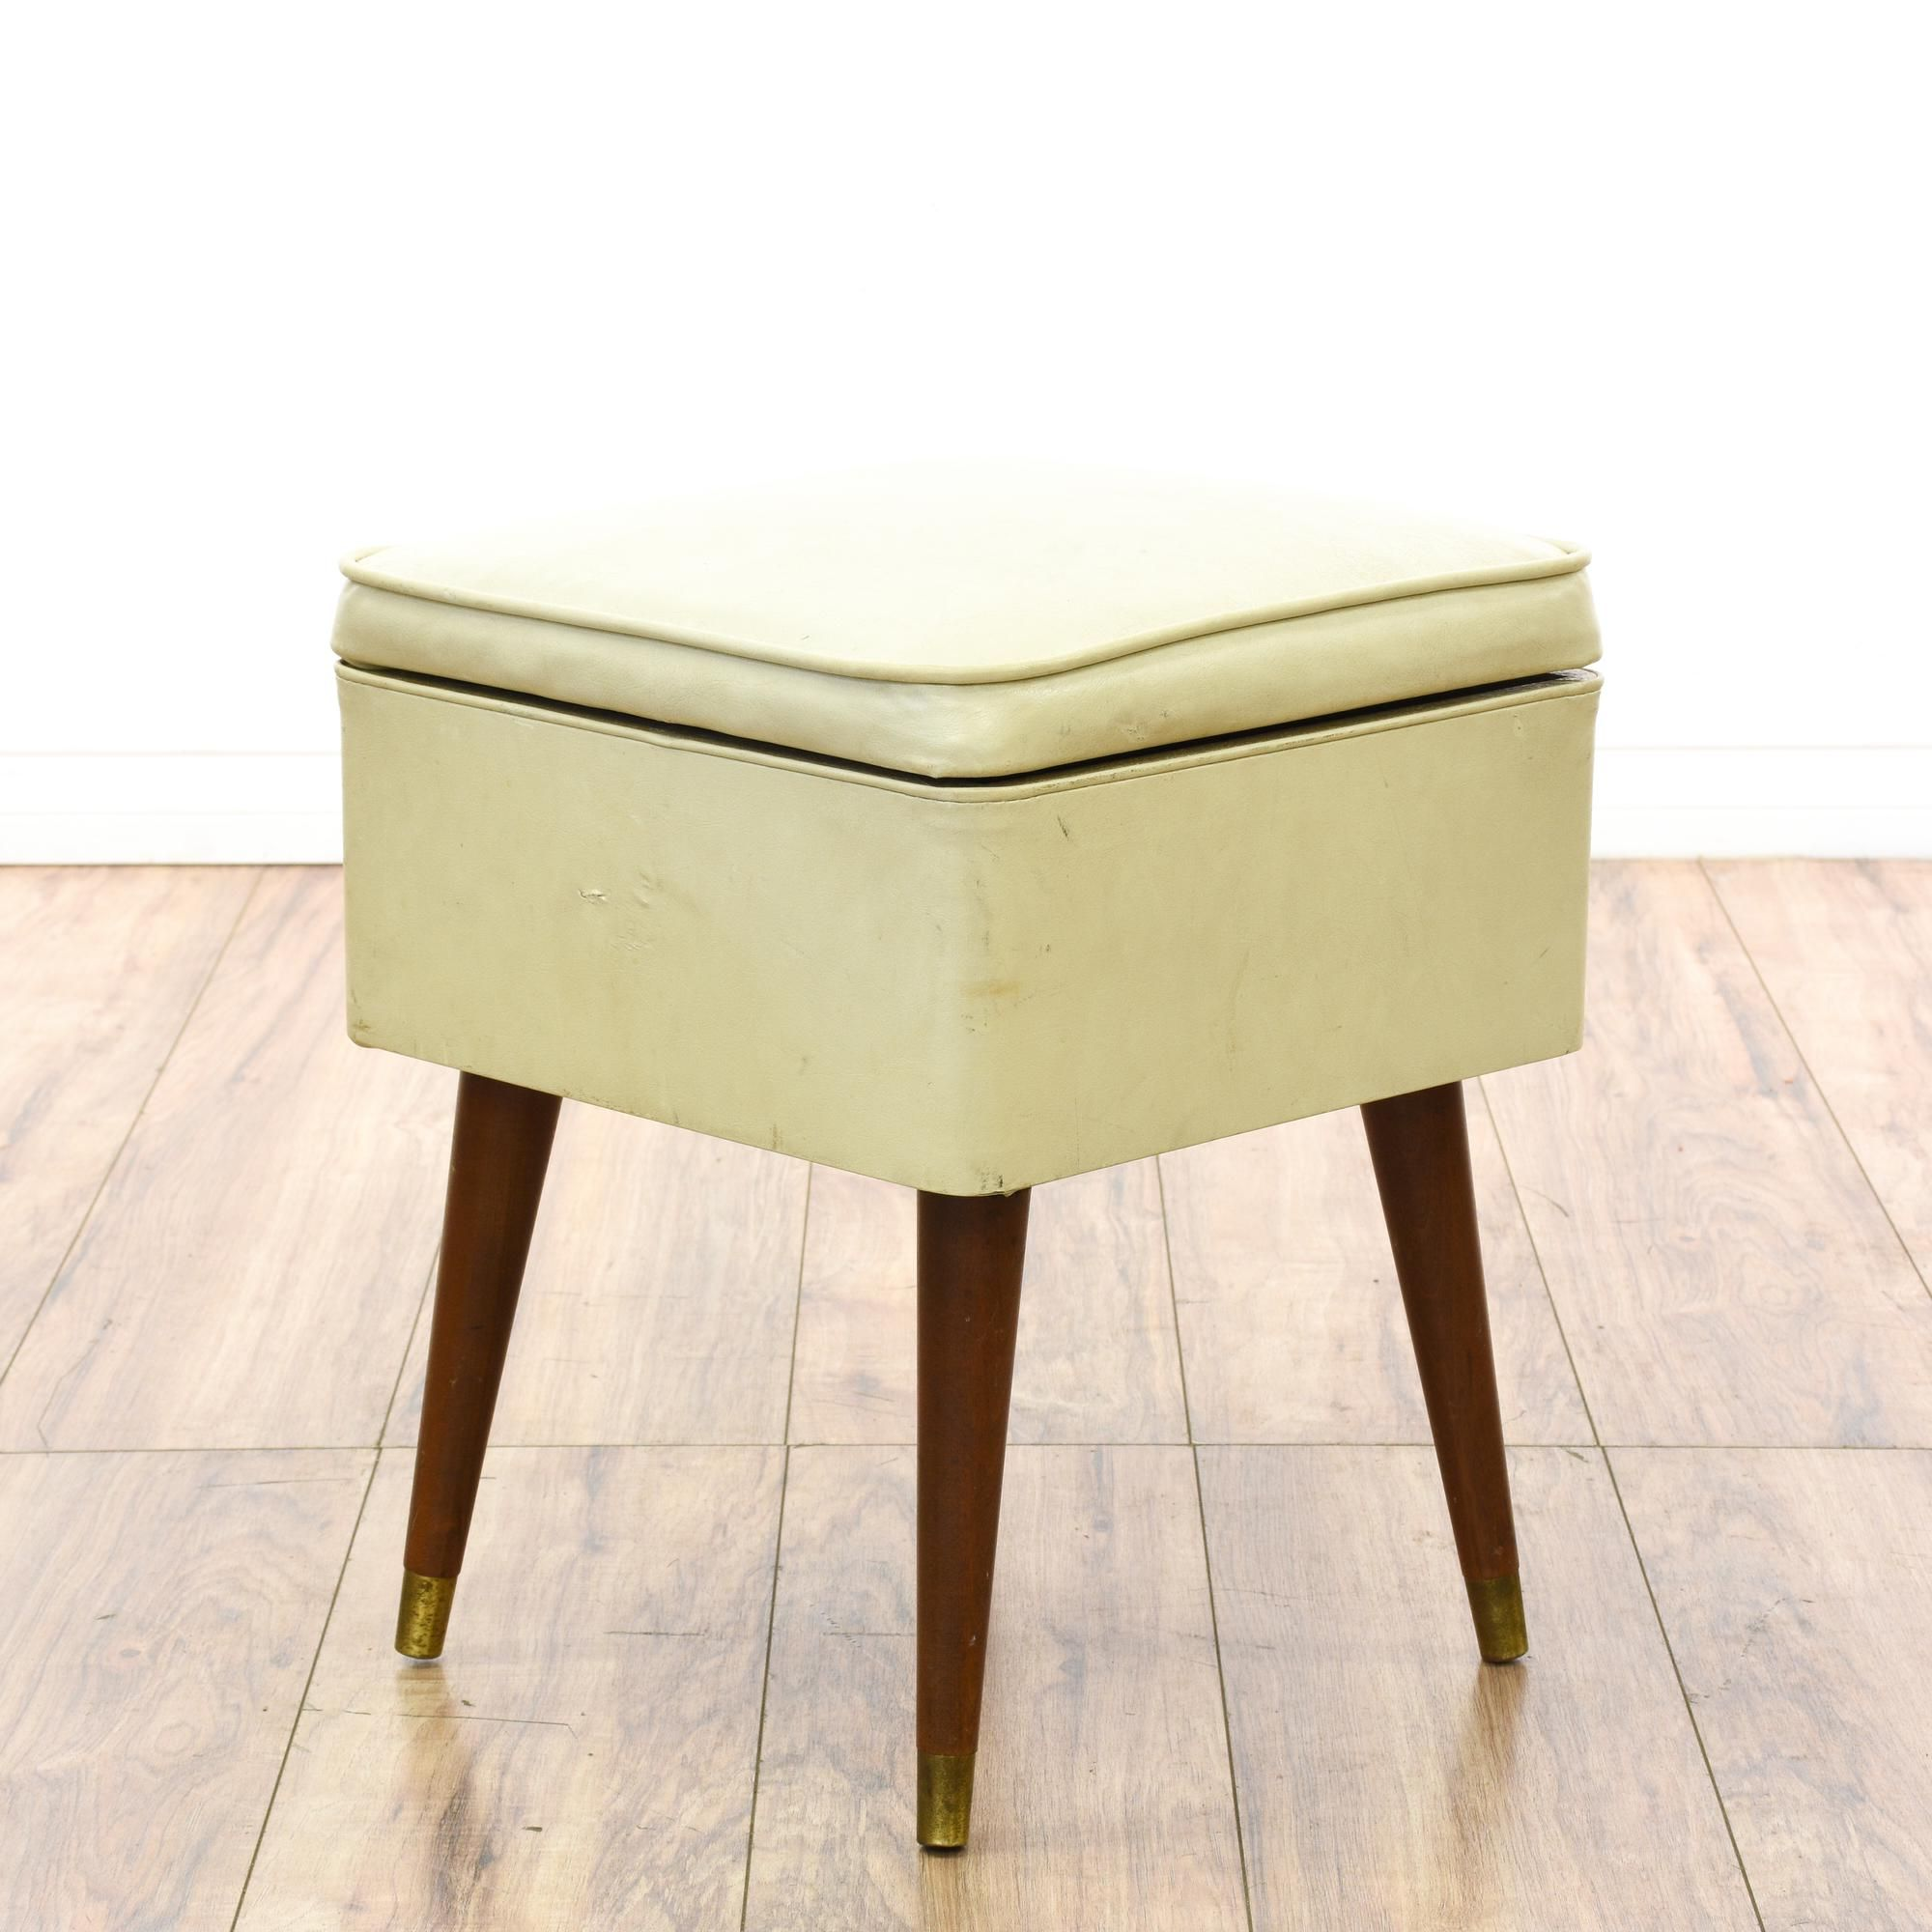 This Mid Century Modern Storage Ottoman Is Upholstered In A Durable Vinyl  In An Off White